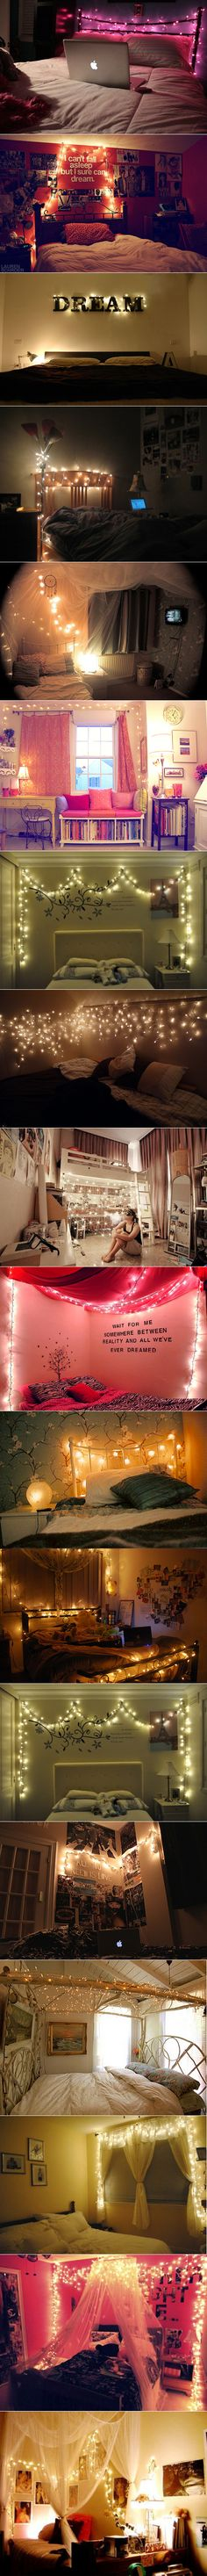 some creative ways to light up the bedroom